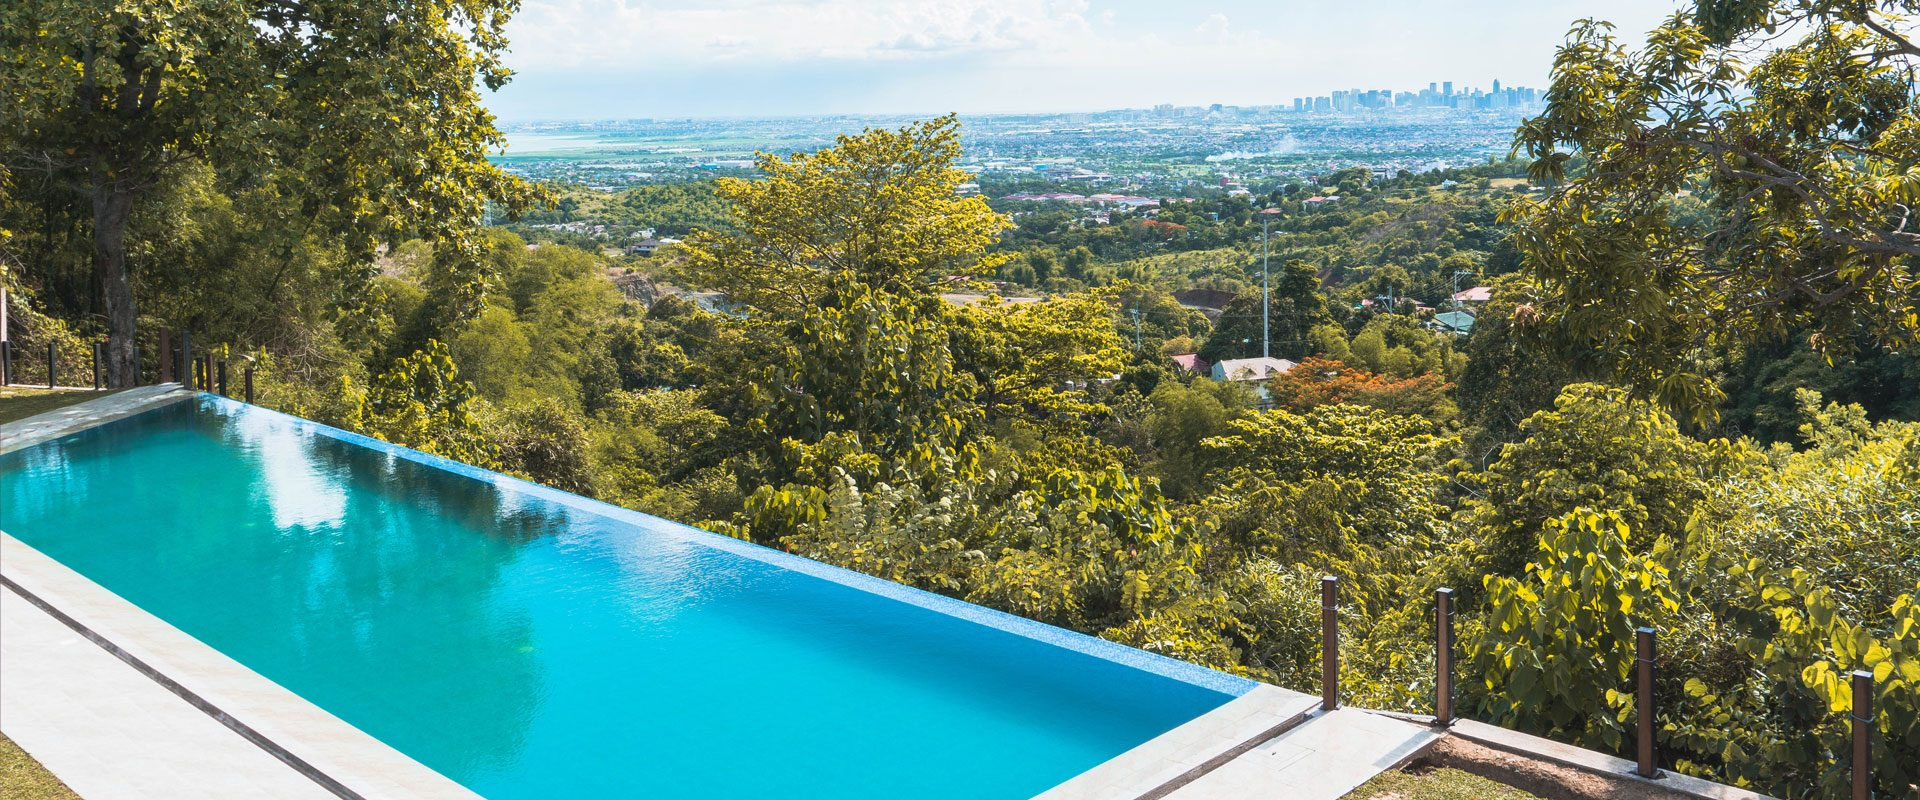 Discover The Gem of Antipolo